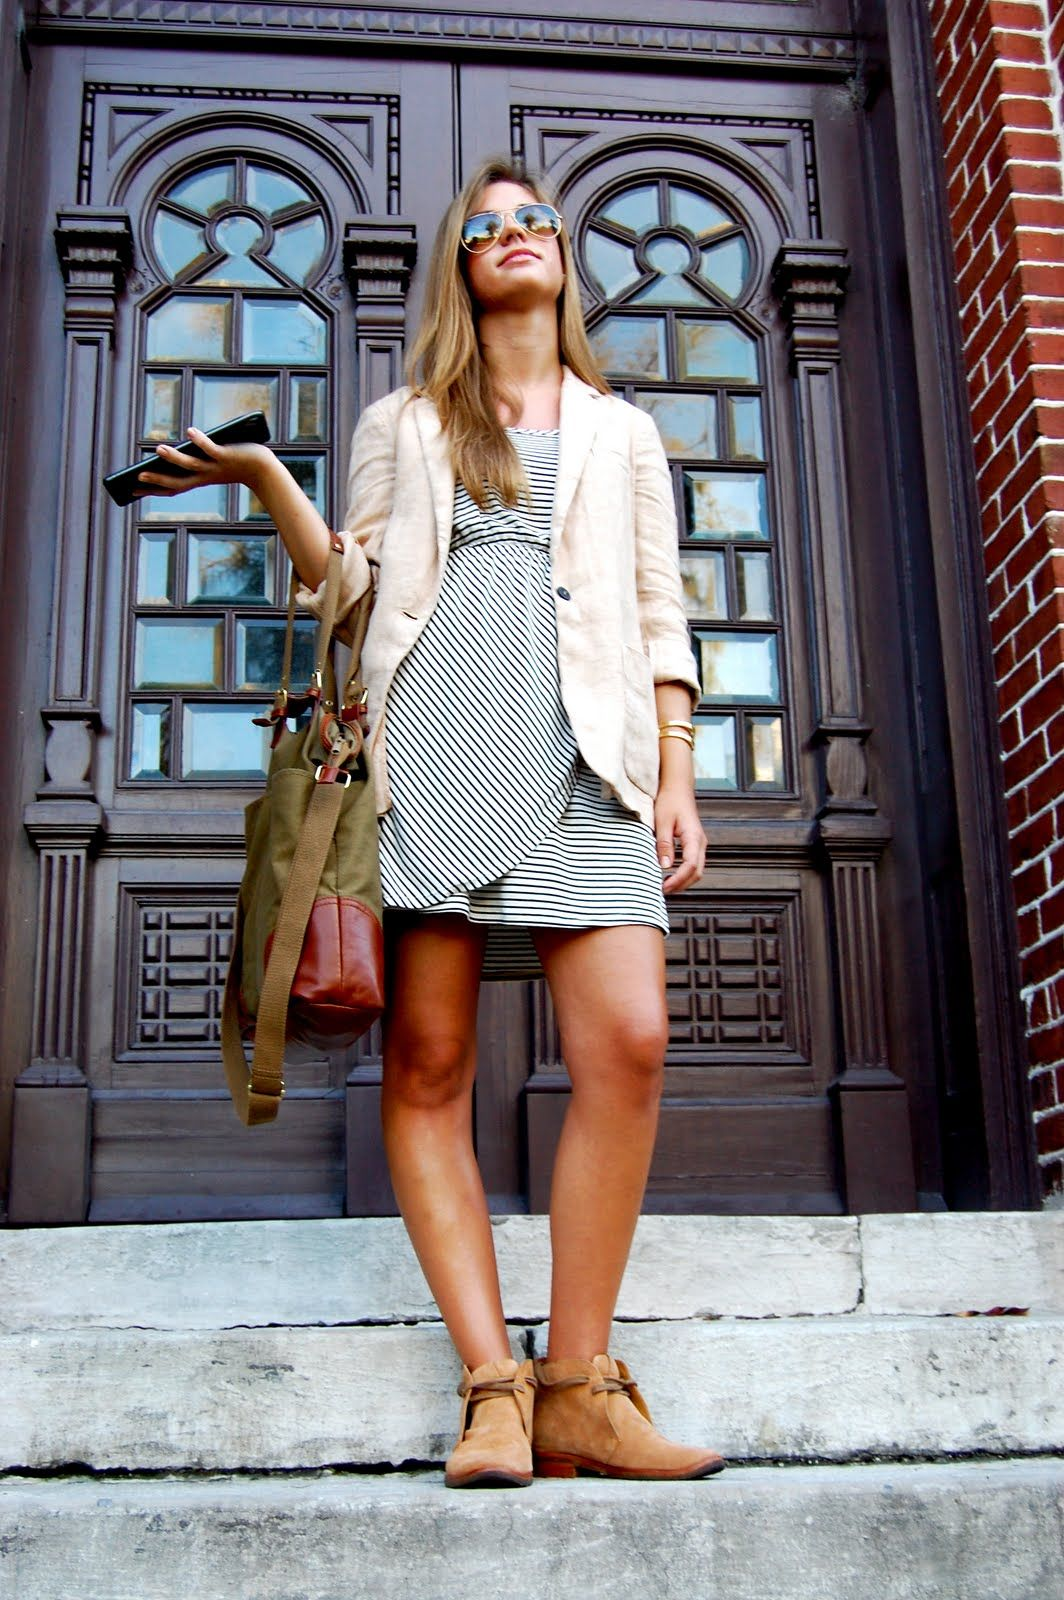 chukka boots women outfit 2015 - google search | fall 2016